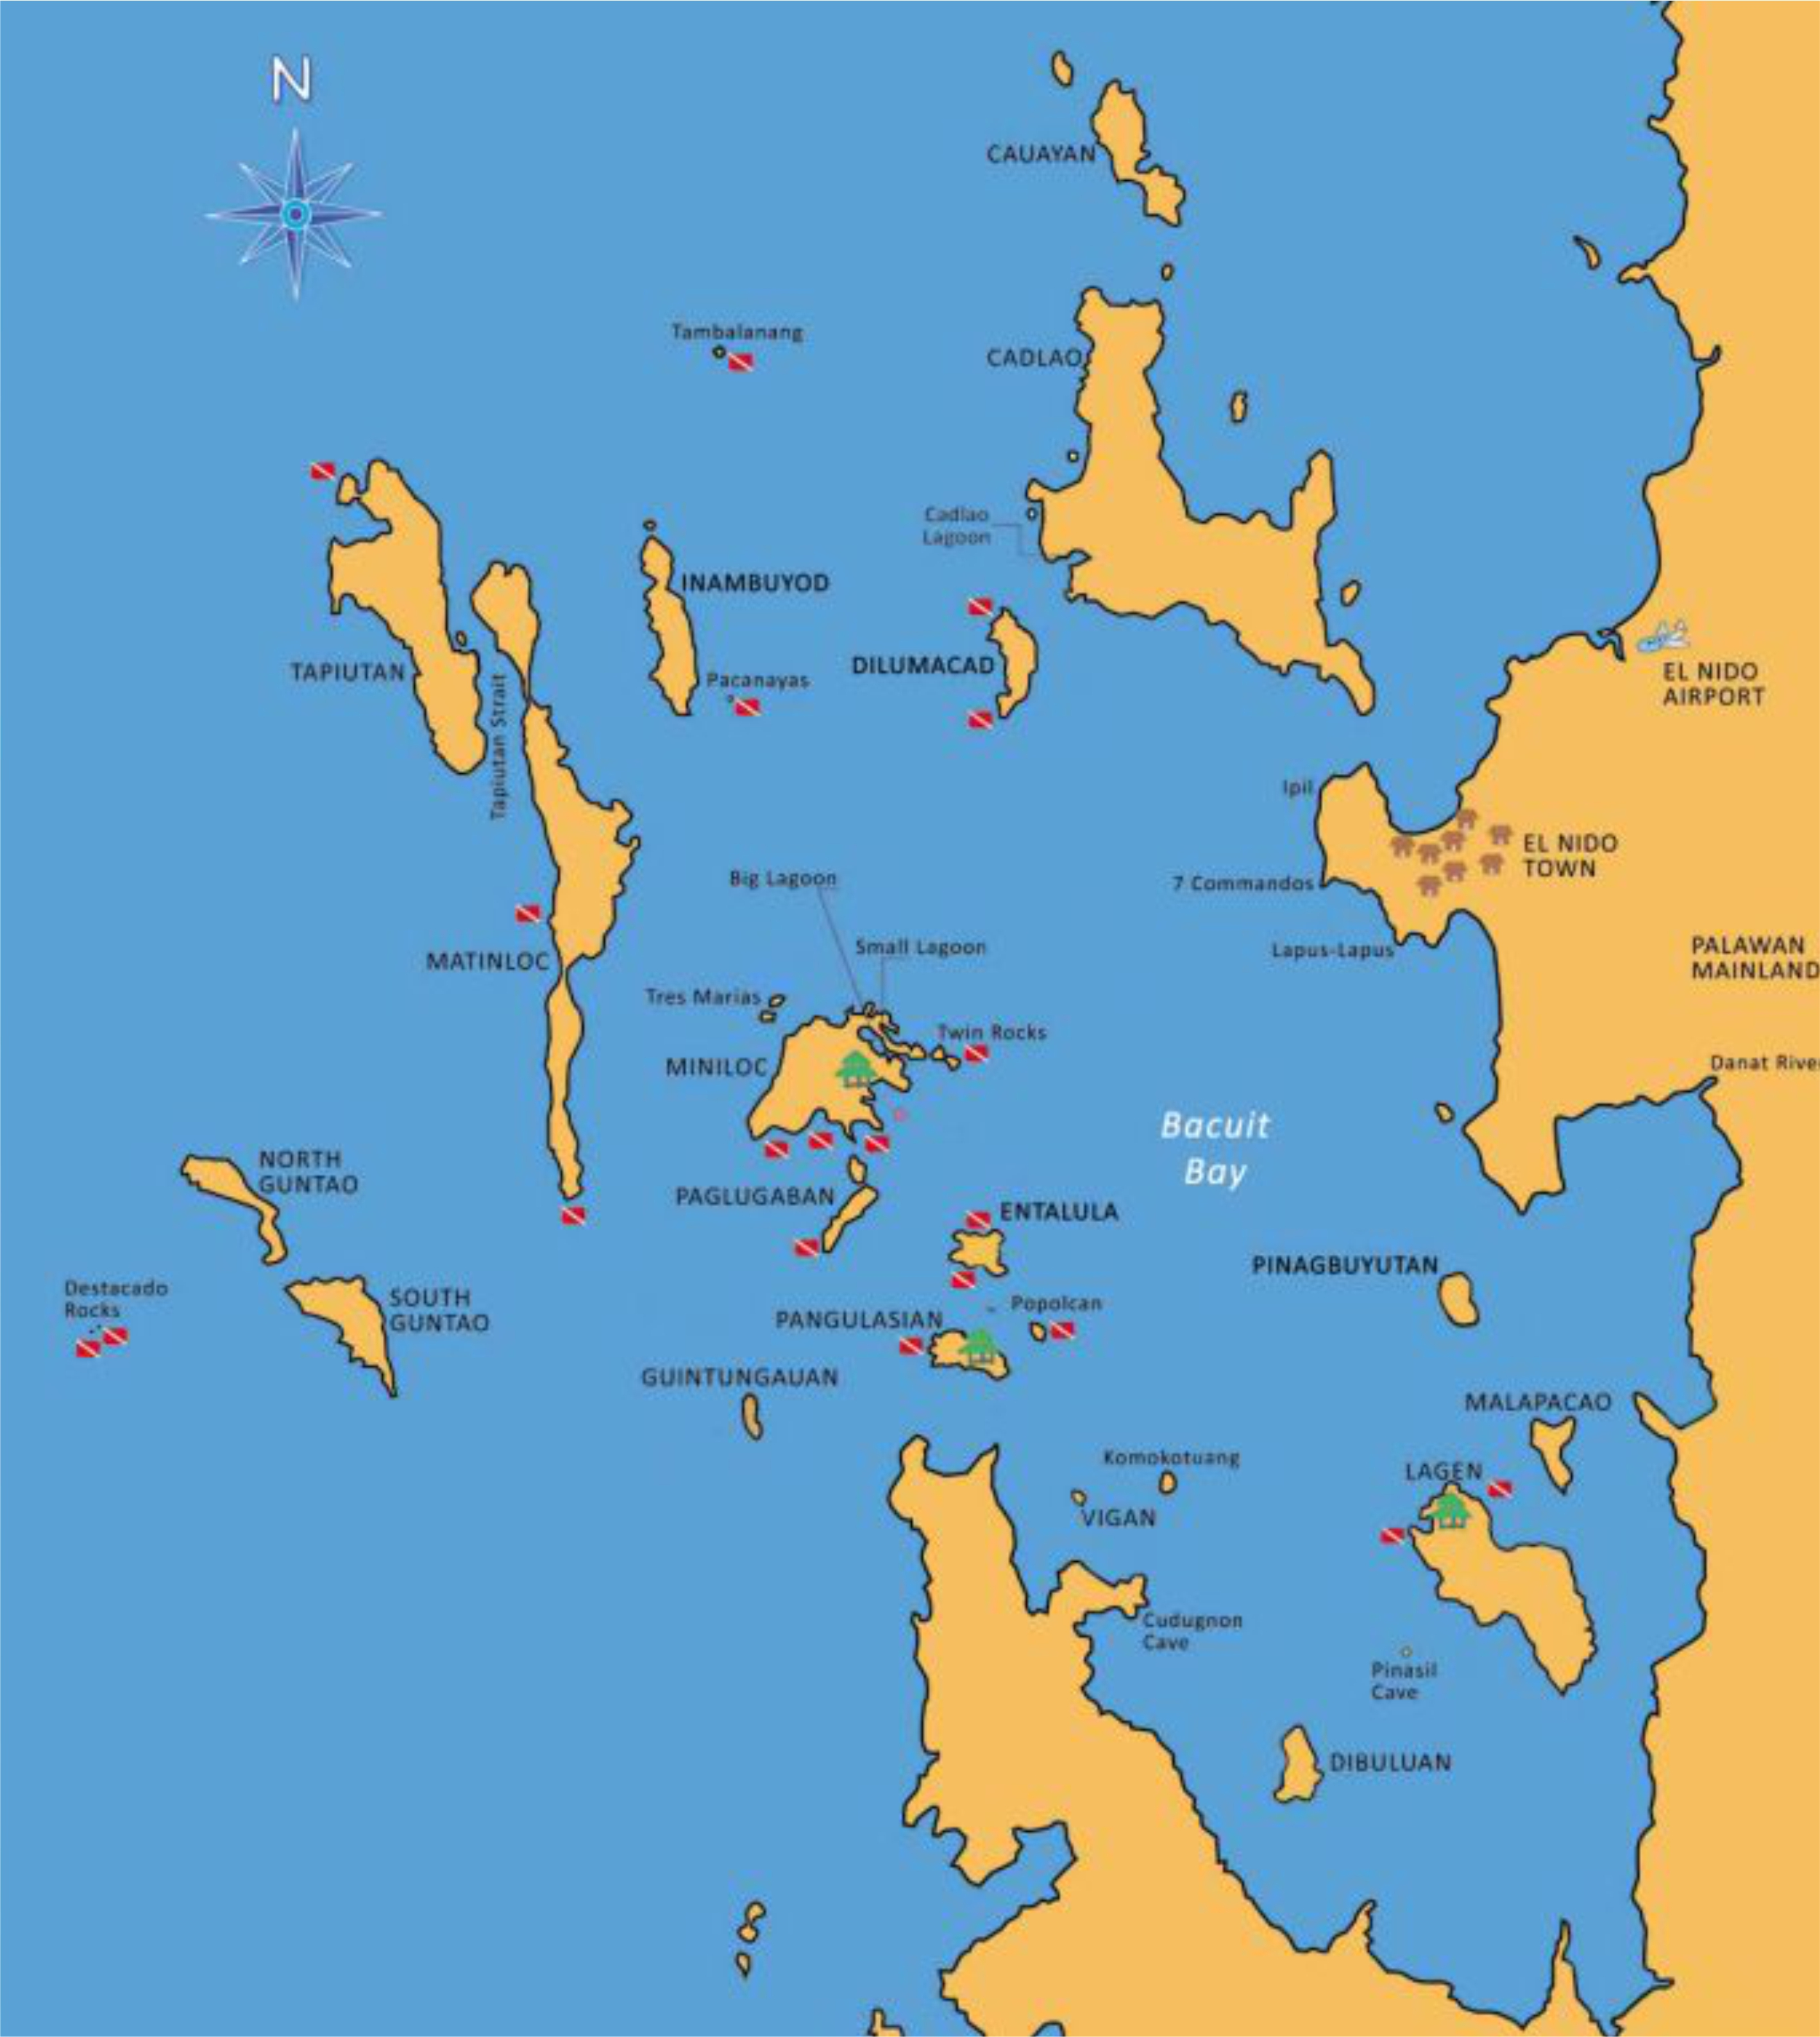 Bacuit Bay Map Diving